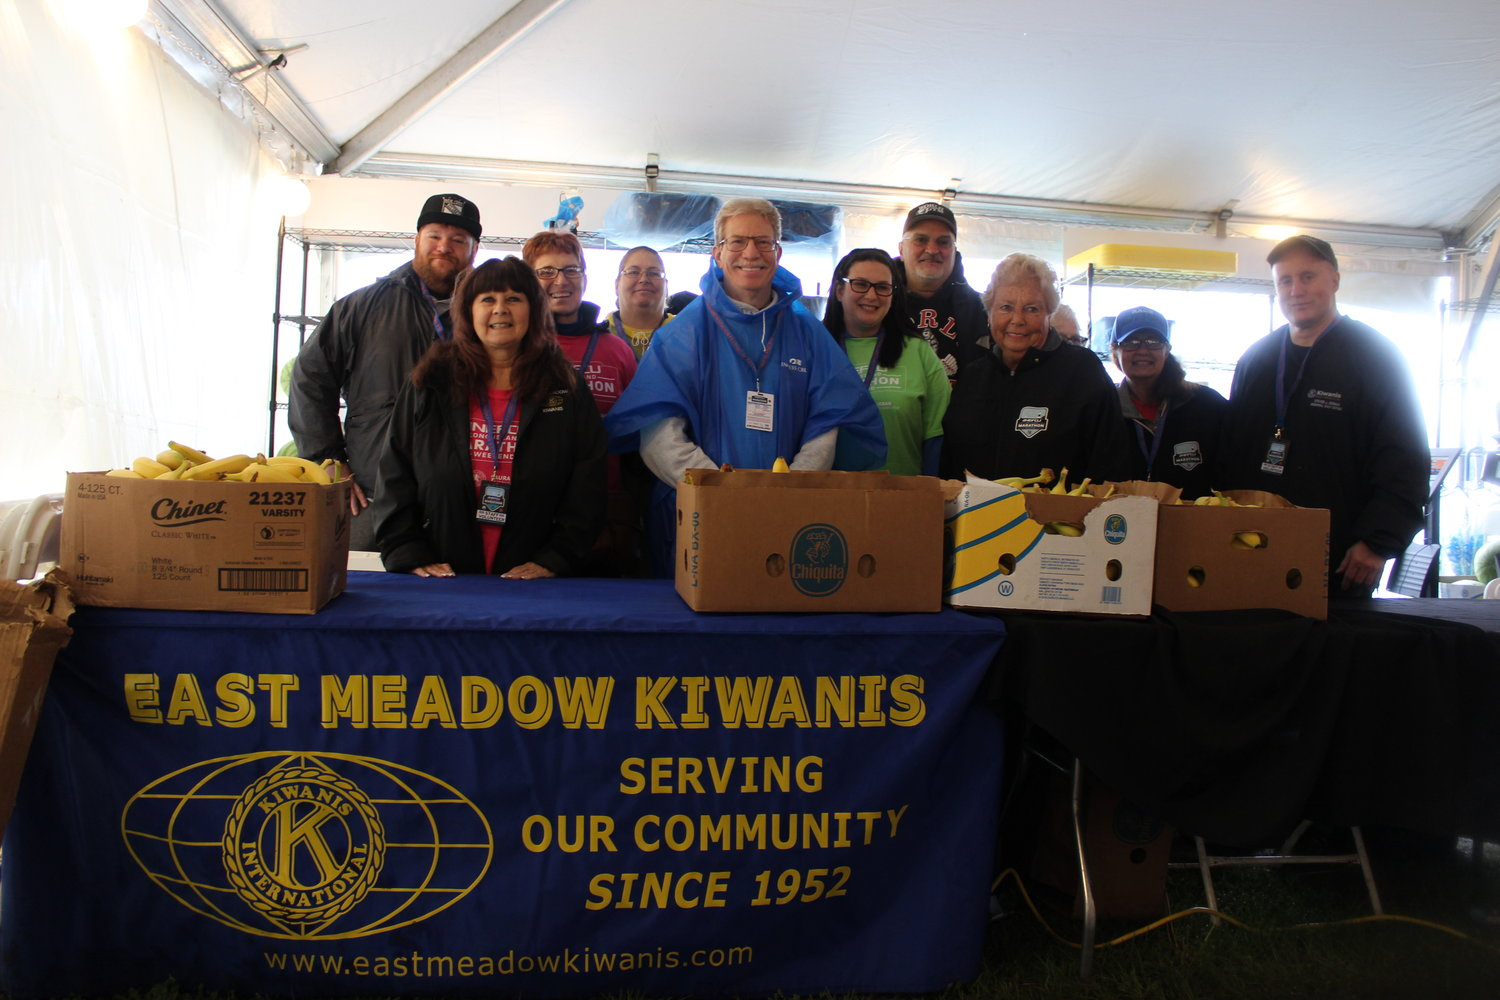 East Meadow Kiwanis showed support by volunteering at the Marathon's registration tent.